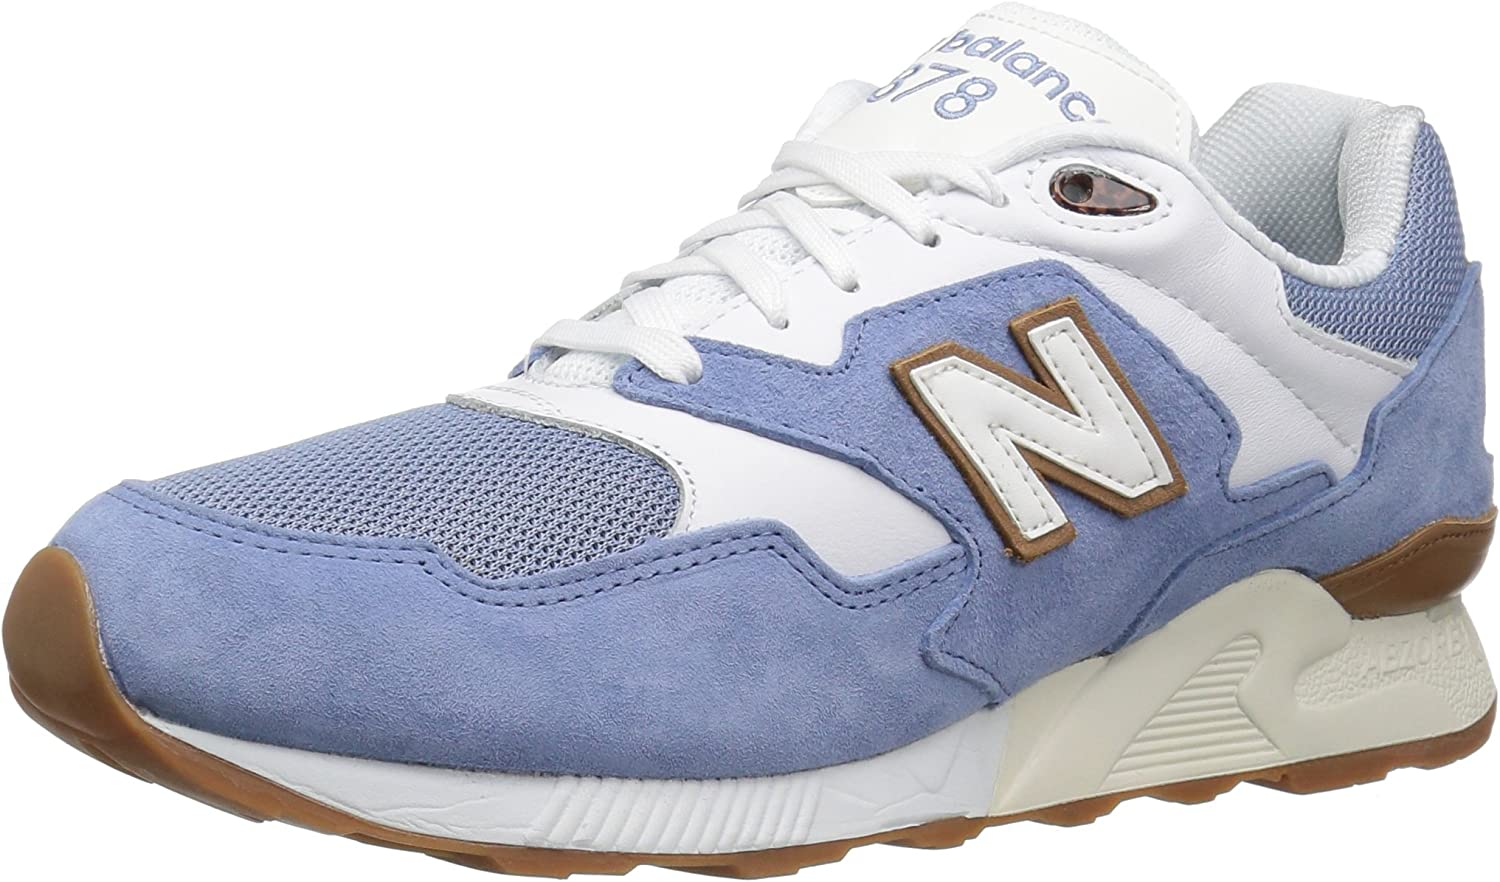 New Balance Men s 878 90s Running Restomod Fashion Sneaker